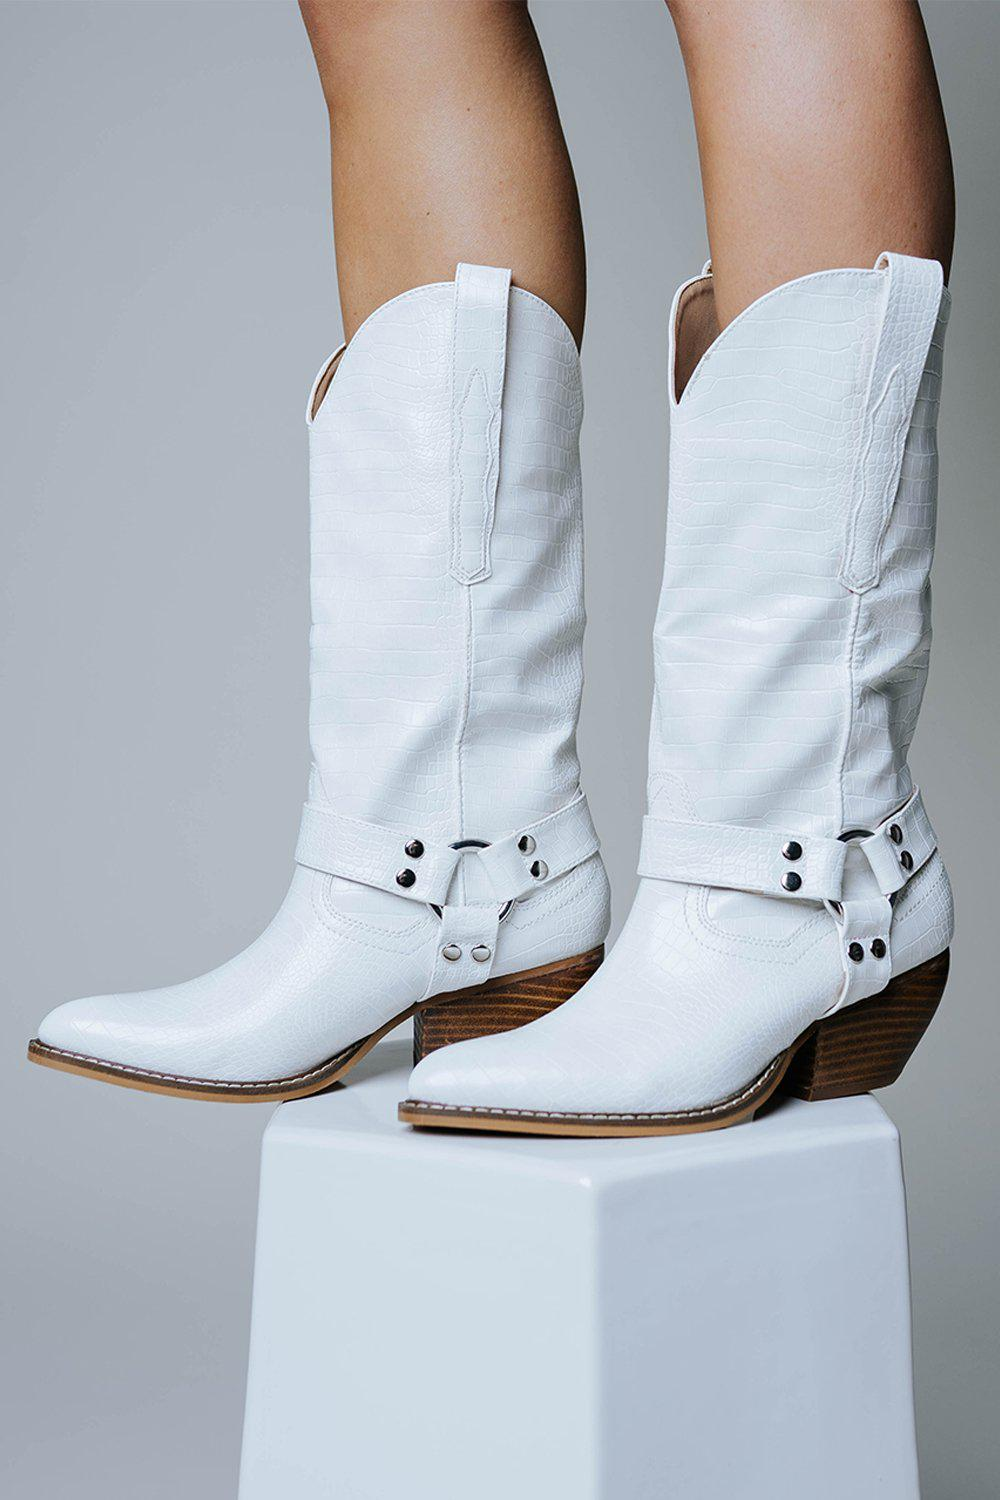 Livin' in Texas Boots-Shoes-n/a-5.5-Clad & Cloth